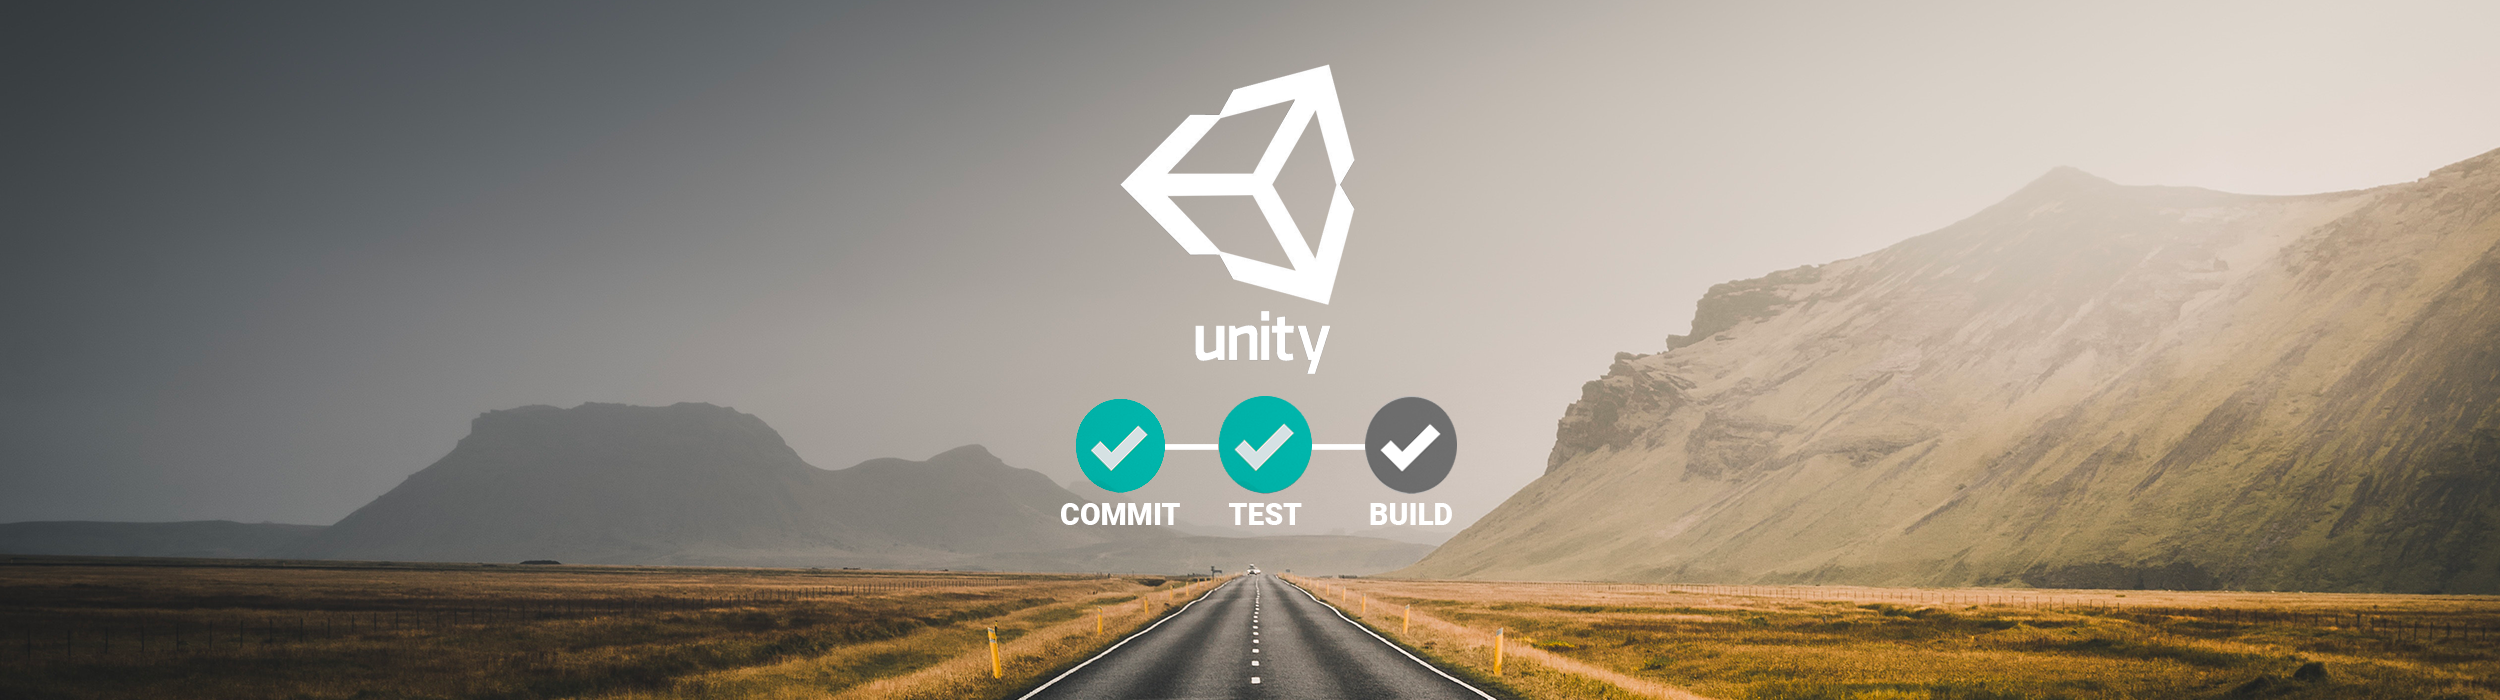 🚀 Continuous Integration in Unity with Gitlab CI/CD: Part 1